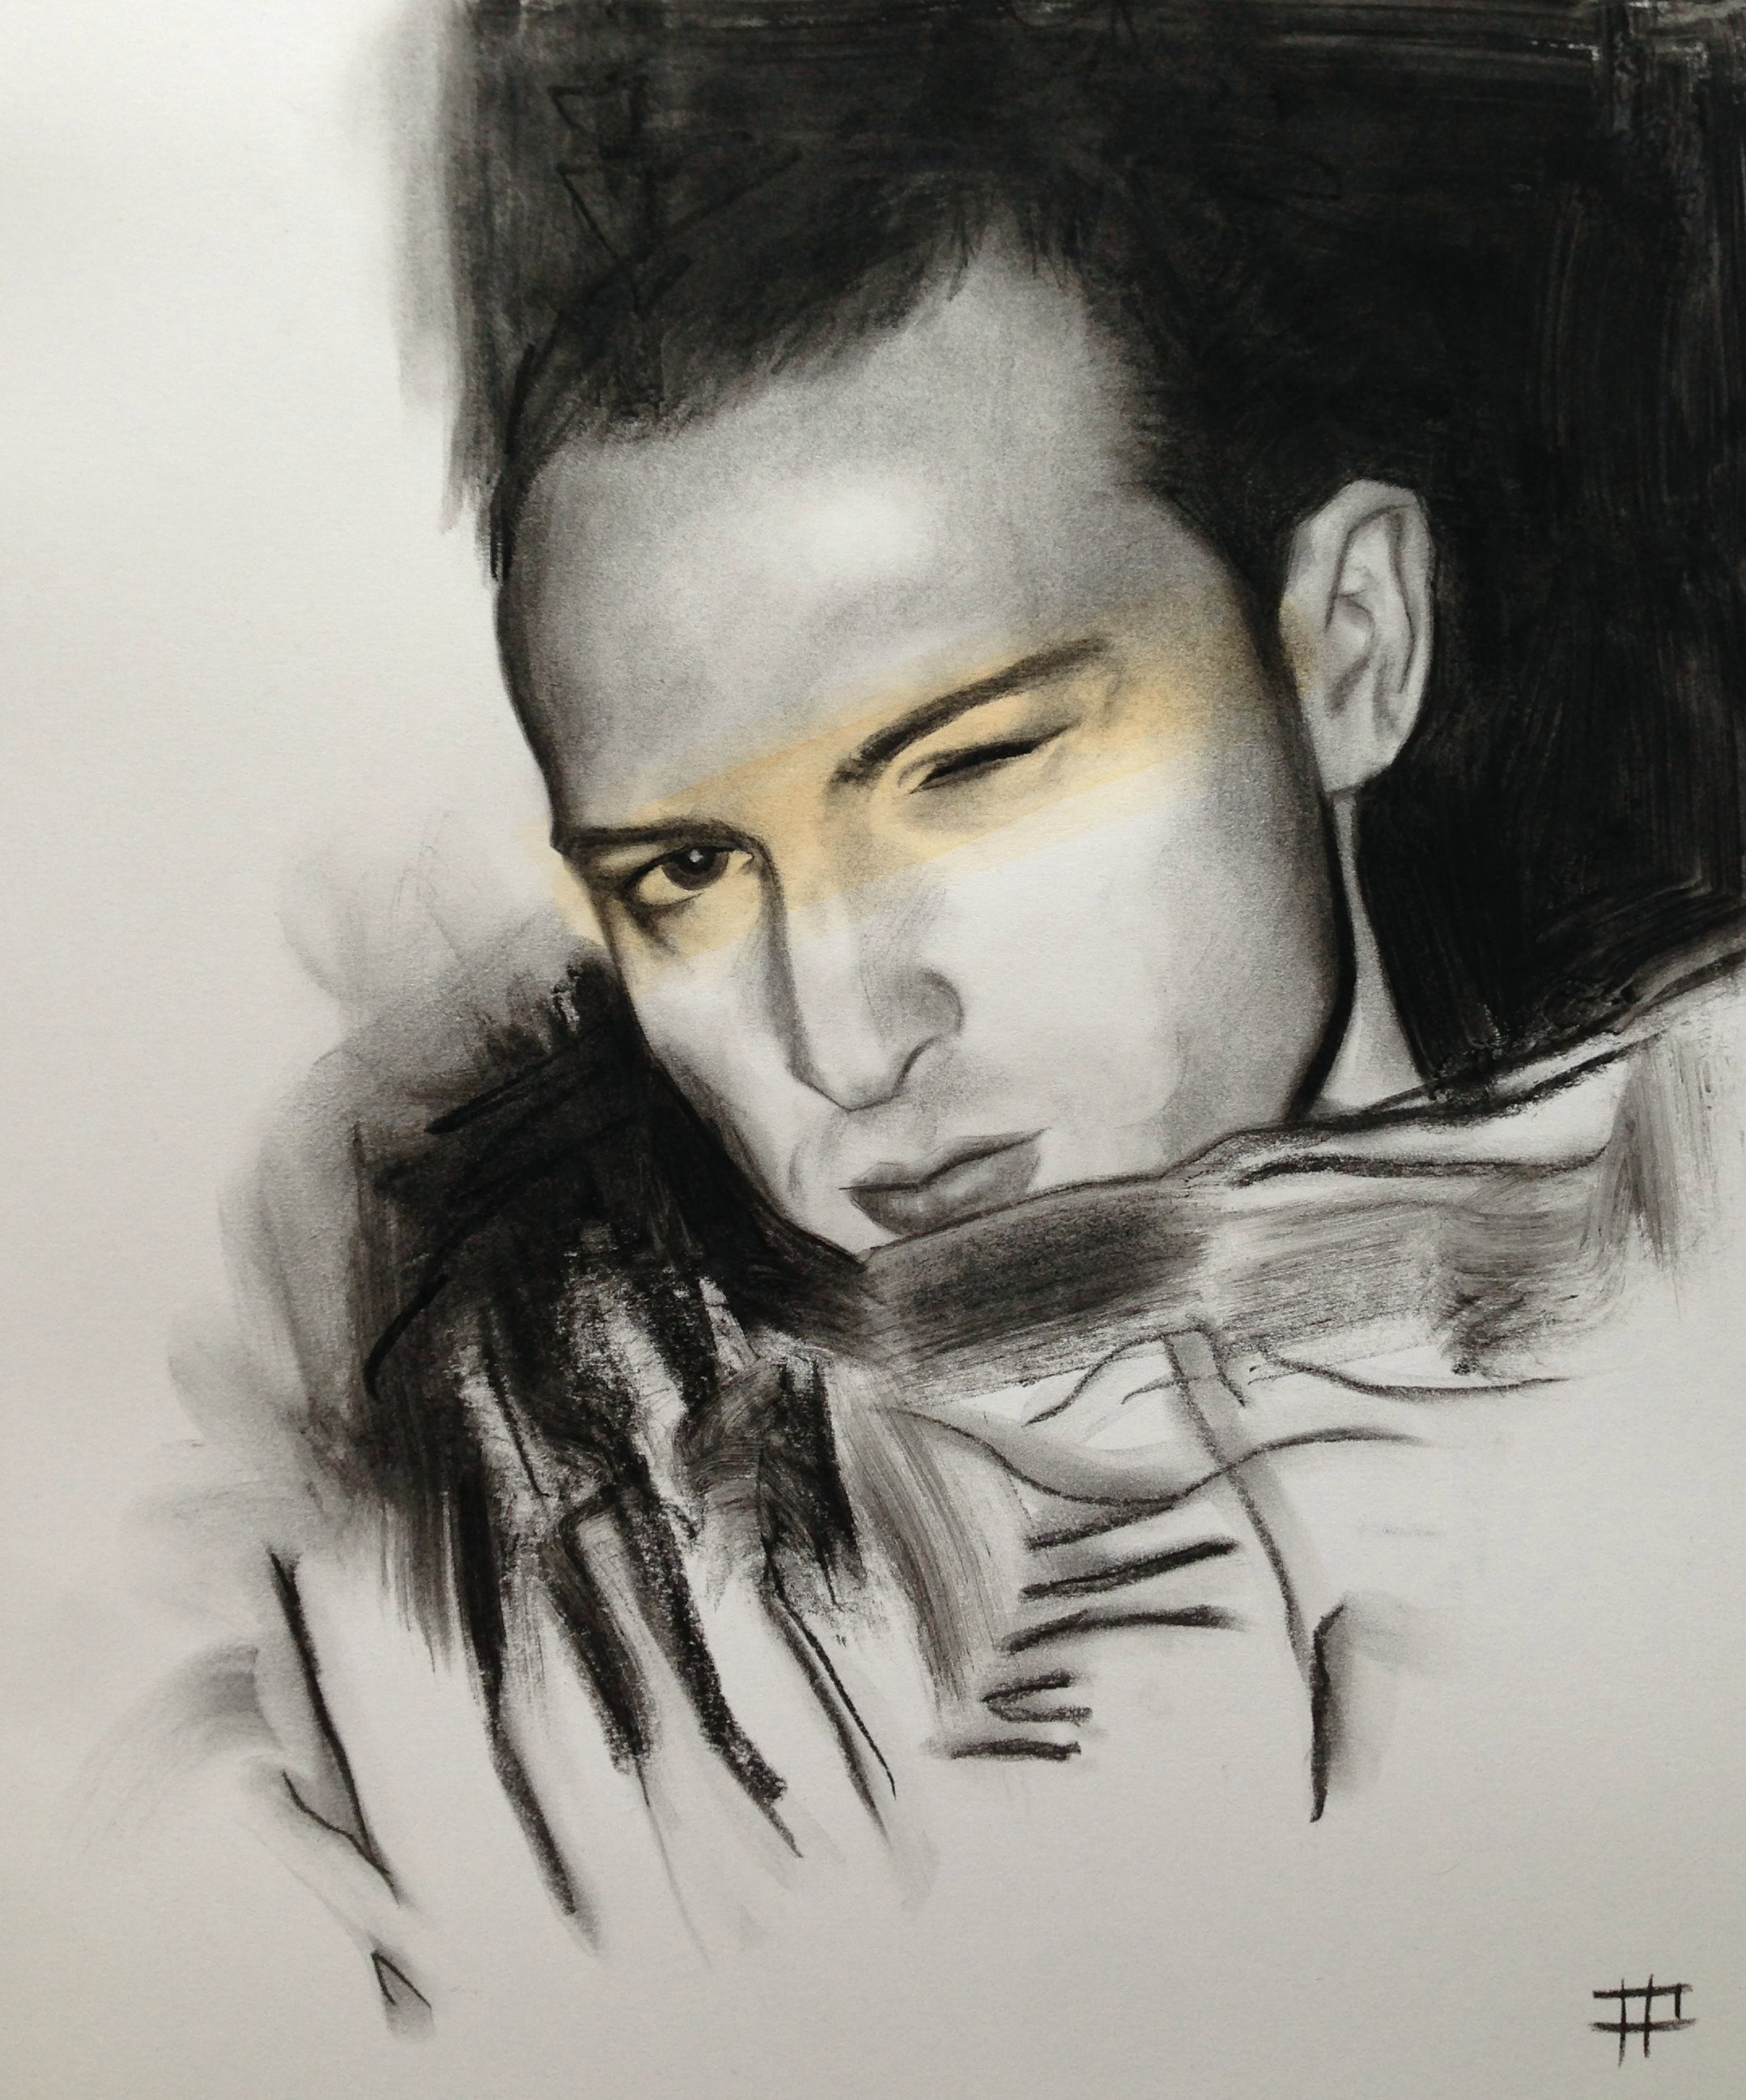 Inch (Charcoal 10 X 12 inch)